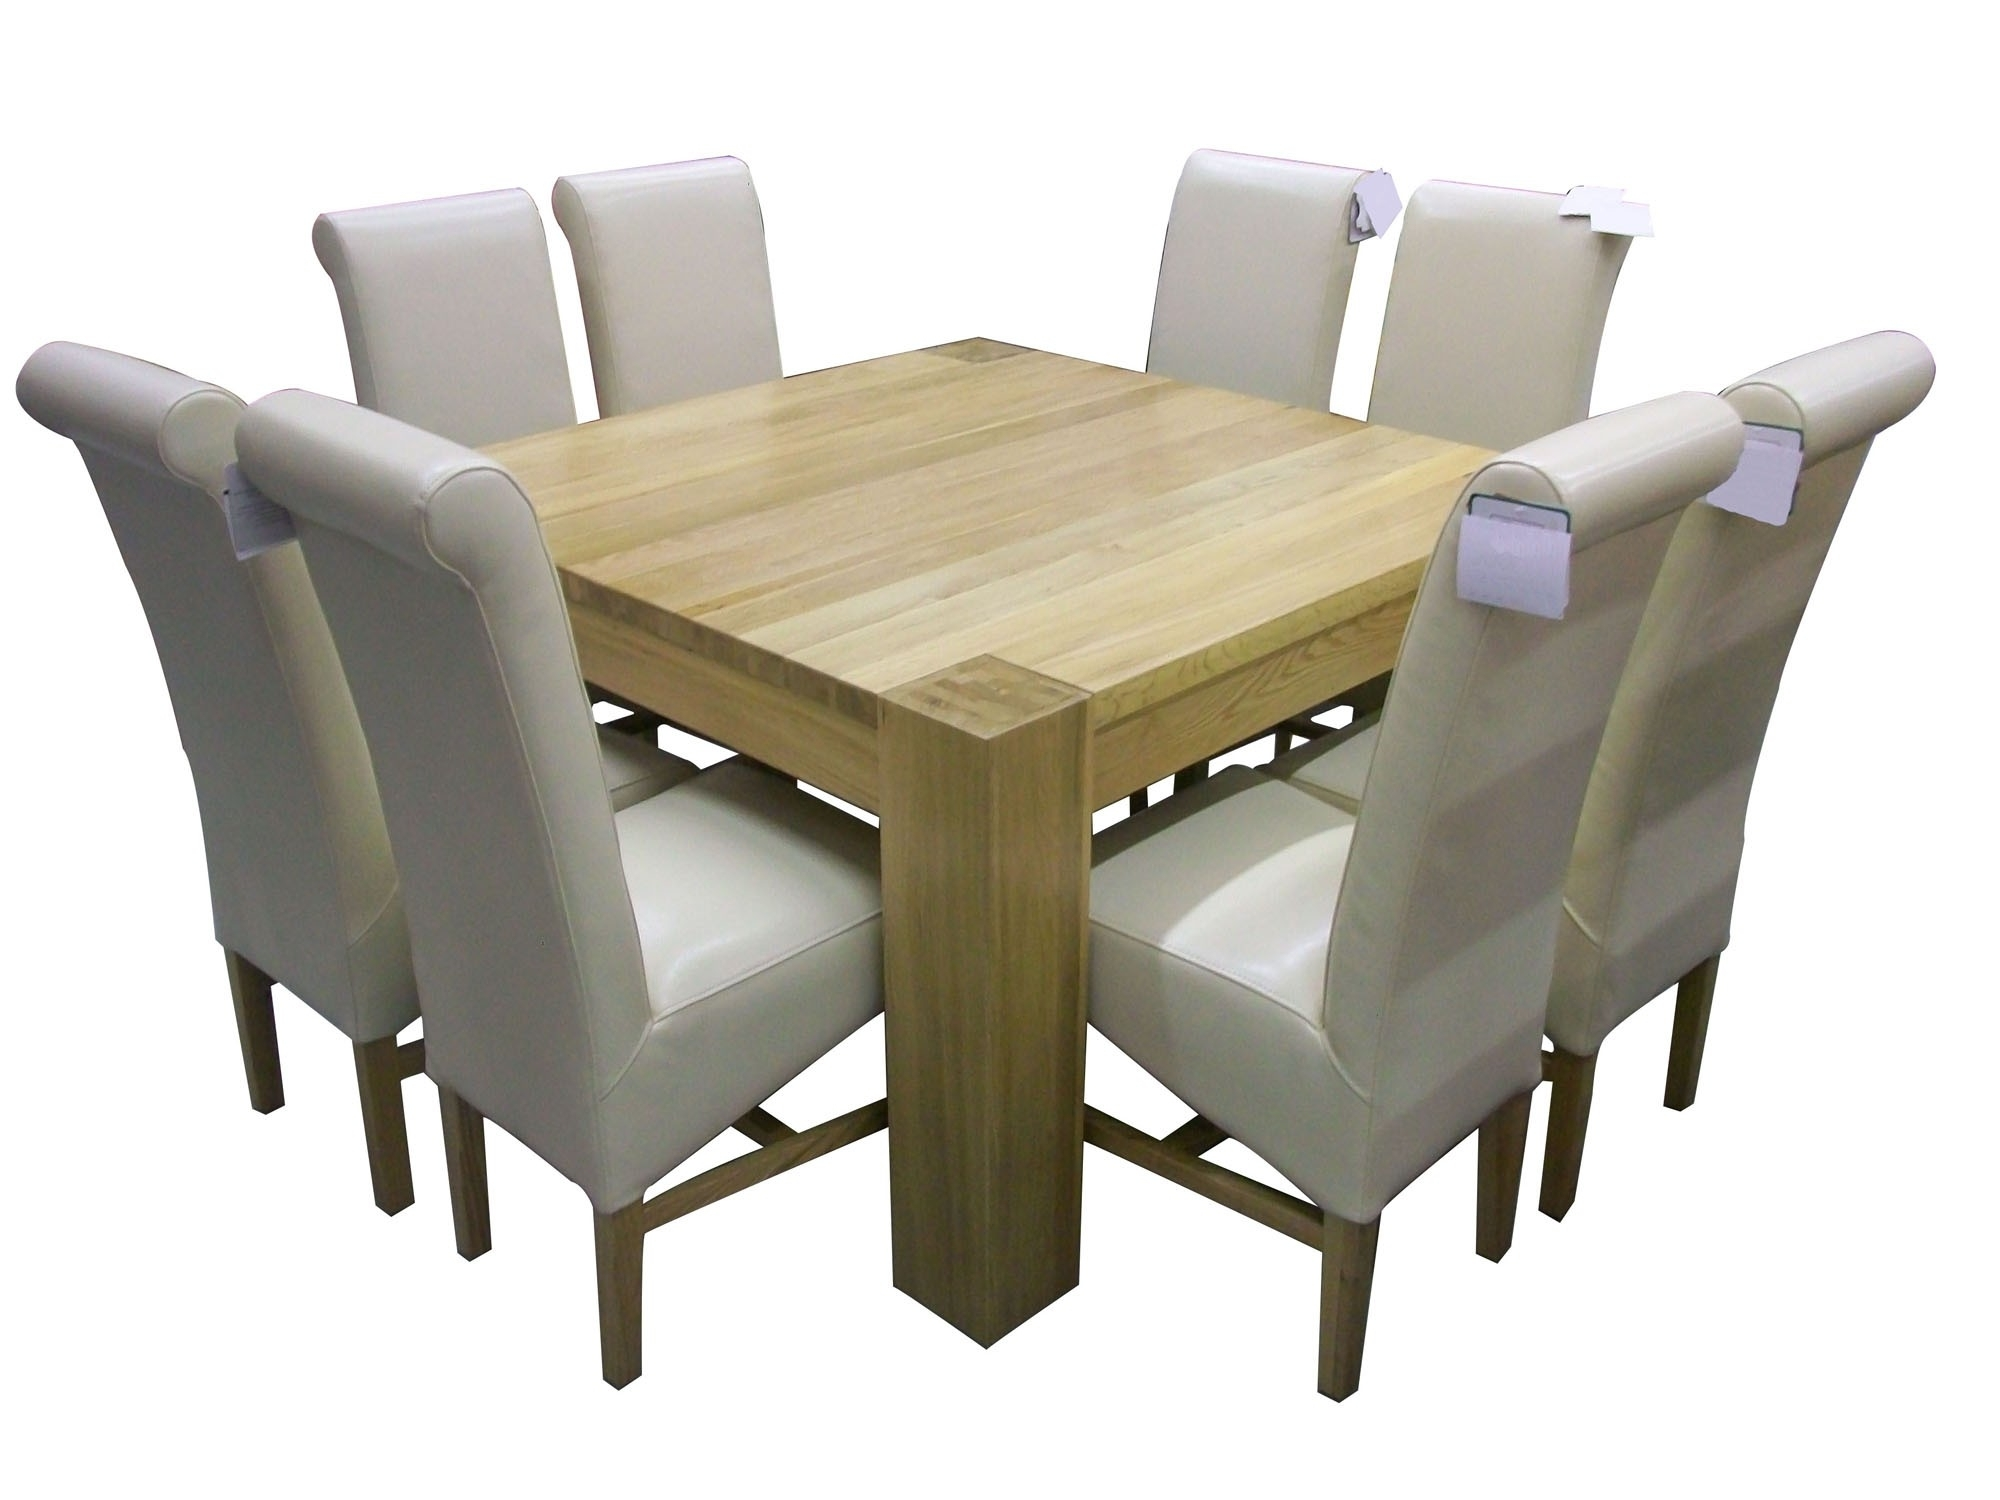 Square Oak Dining Tables Regarding Recent Solid Oak Dining Room Table And 8 Chairs Inspirational White Square (View 8 of 25)